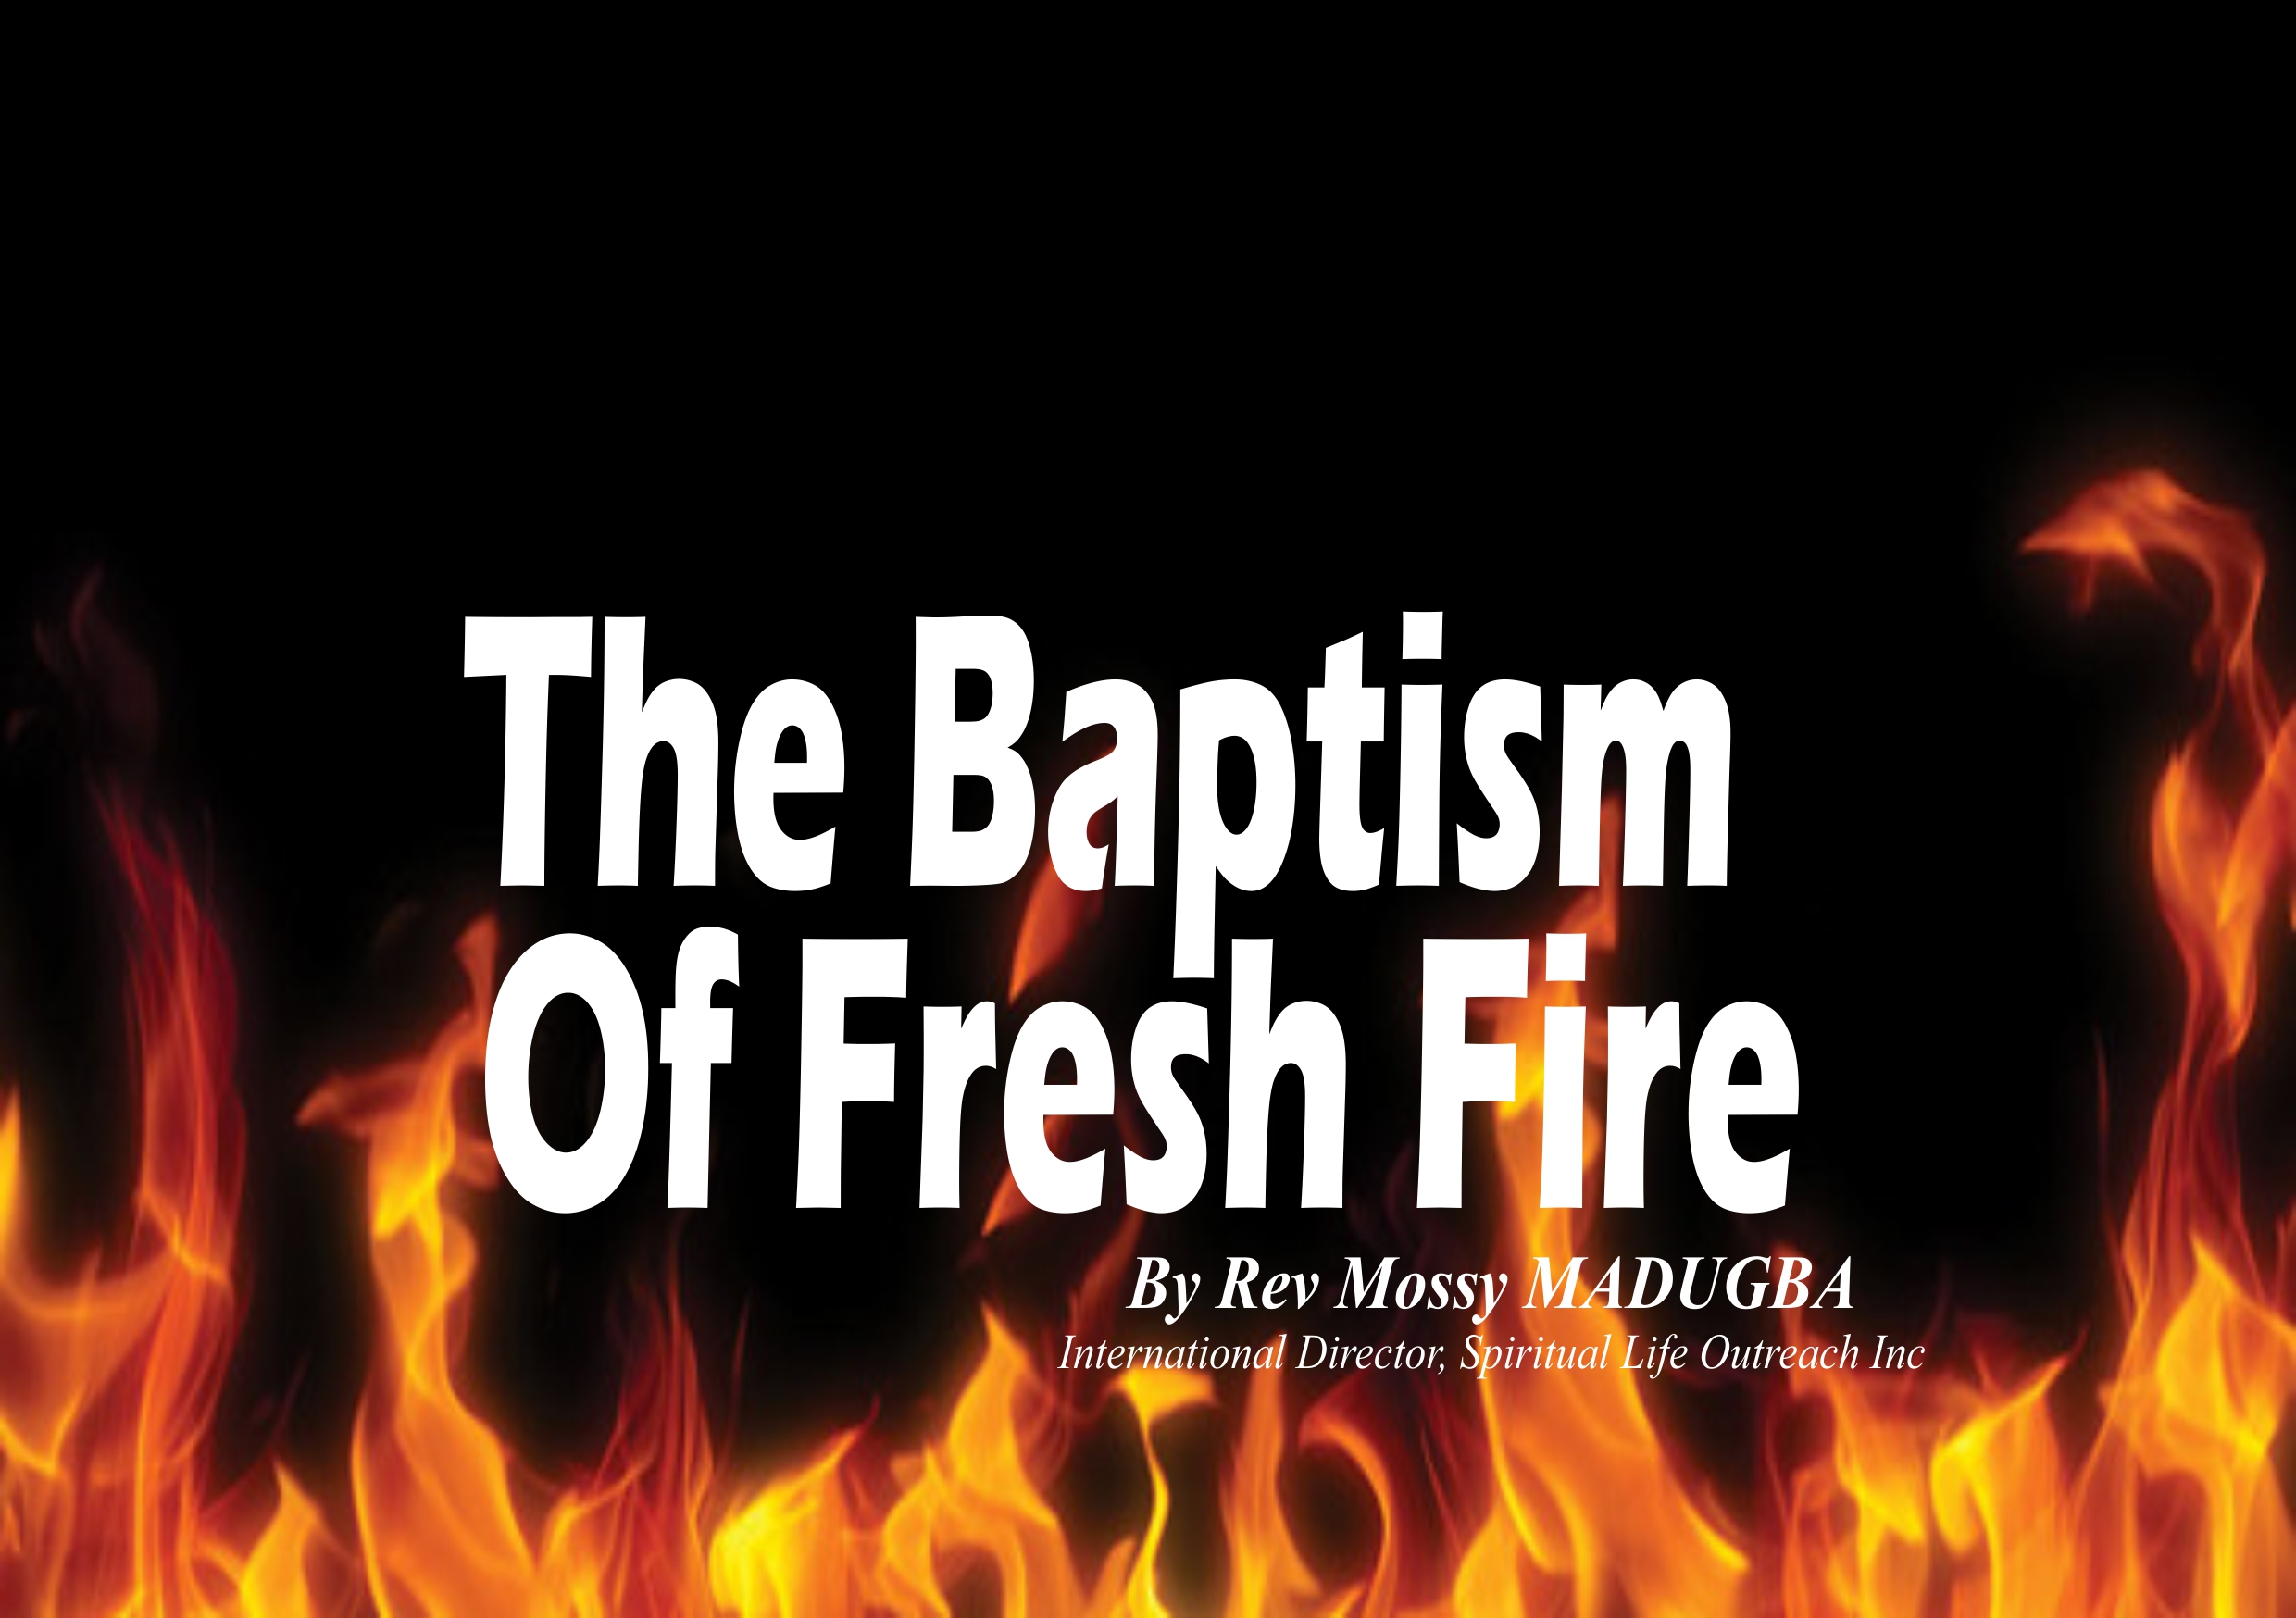 The Baptism of Fresh Fire, by Rev Mossy Madugba